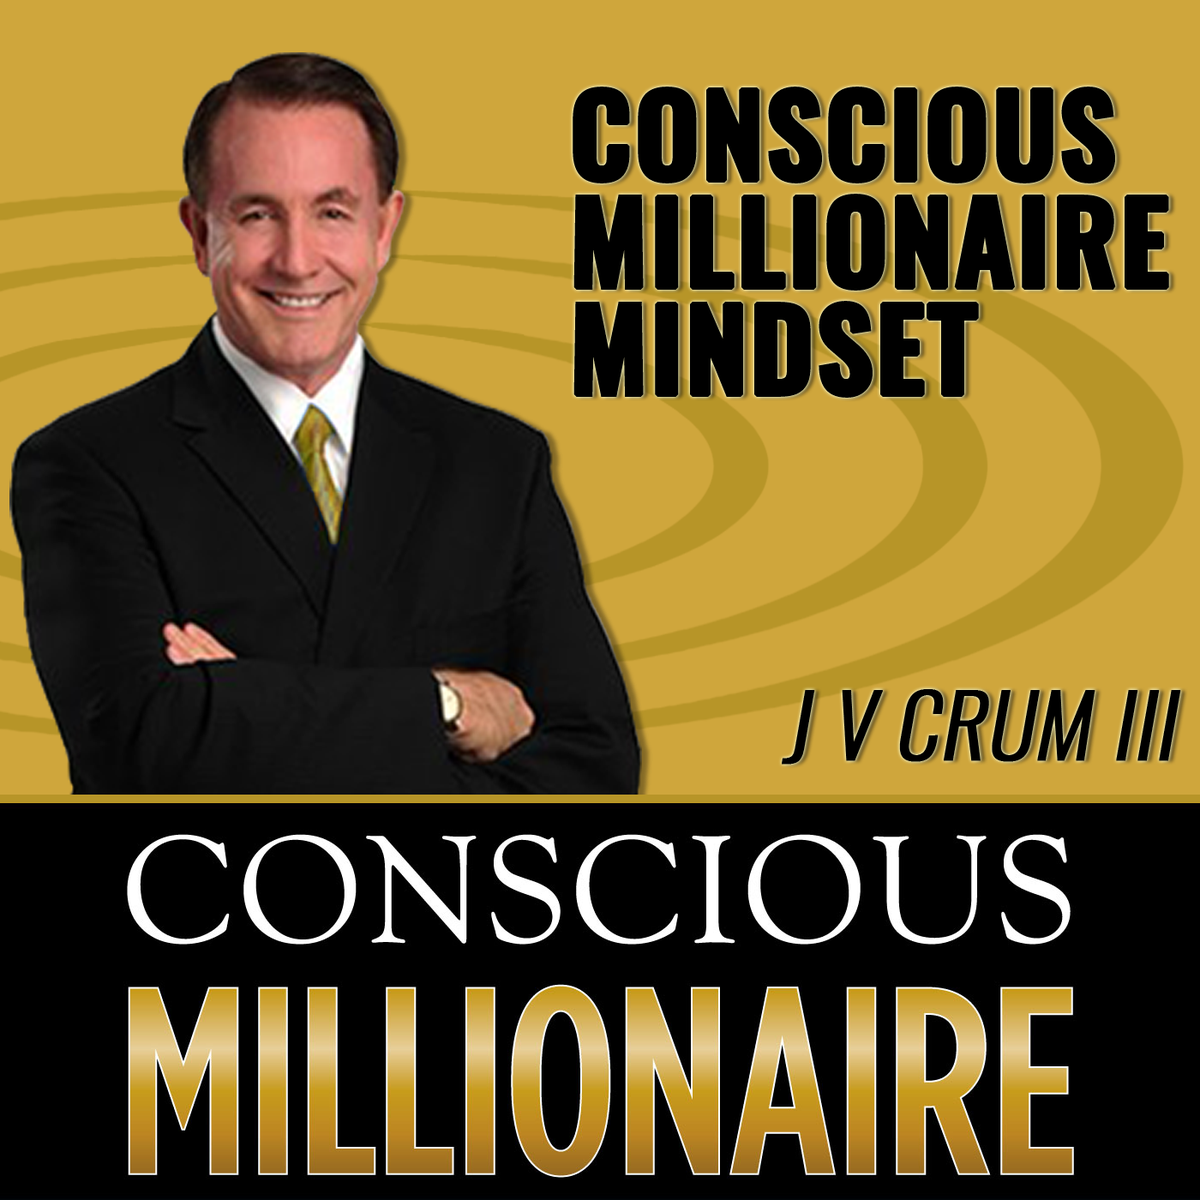 How to think, act, and perform like a Conscious Millionaire entrepreneur? Learn now Listen http://ow.ly/jGmA30pu5w7  jvcrum entrepreneur #startup pic.twitter.com/WLXsabAmaq